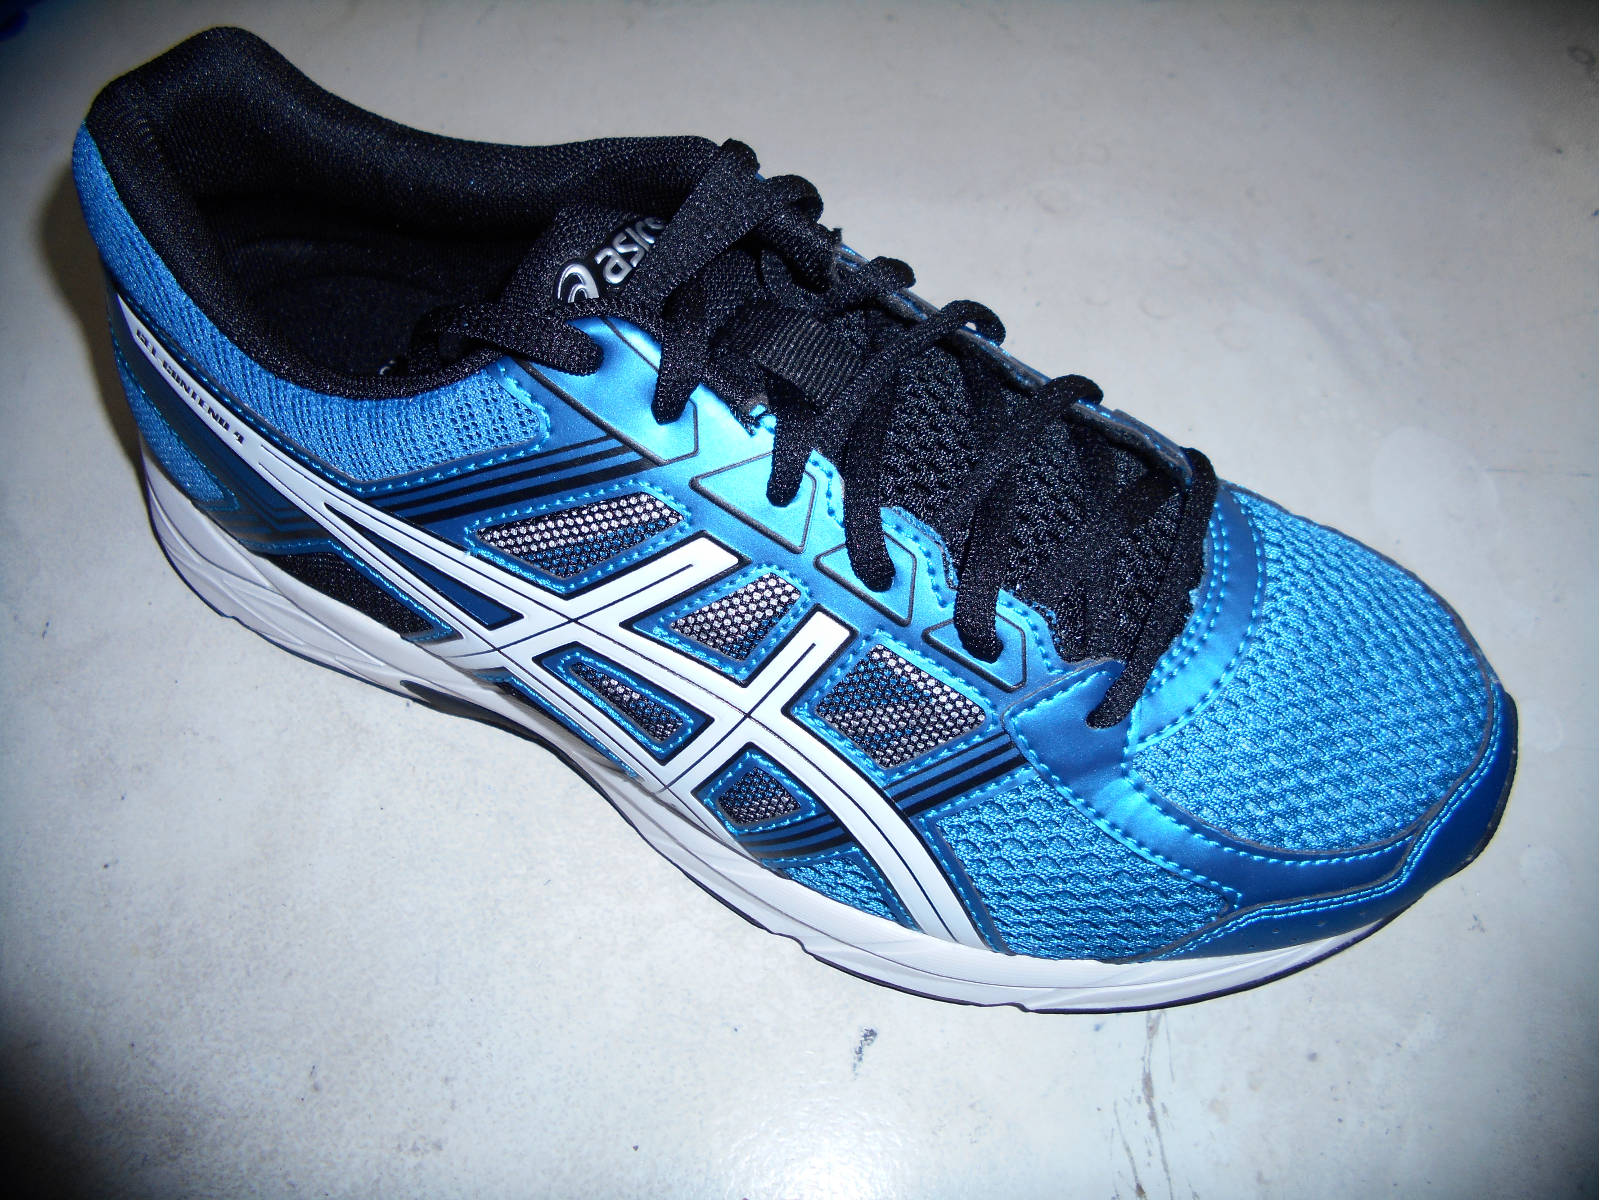 Sneakers hombre T715N running Asics GEL-CONTEND 4 T715N hombre 4901 ccb5d0